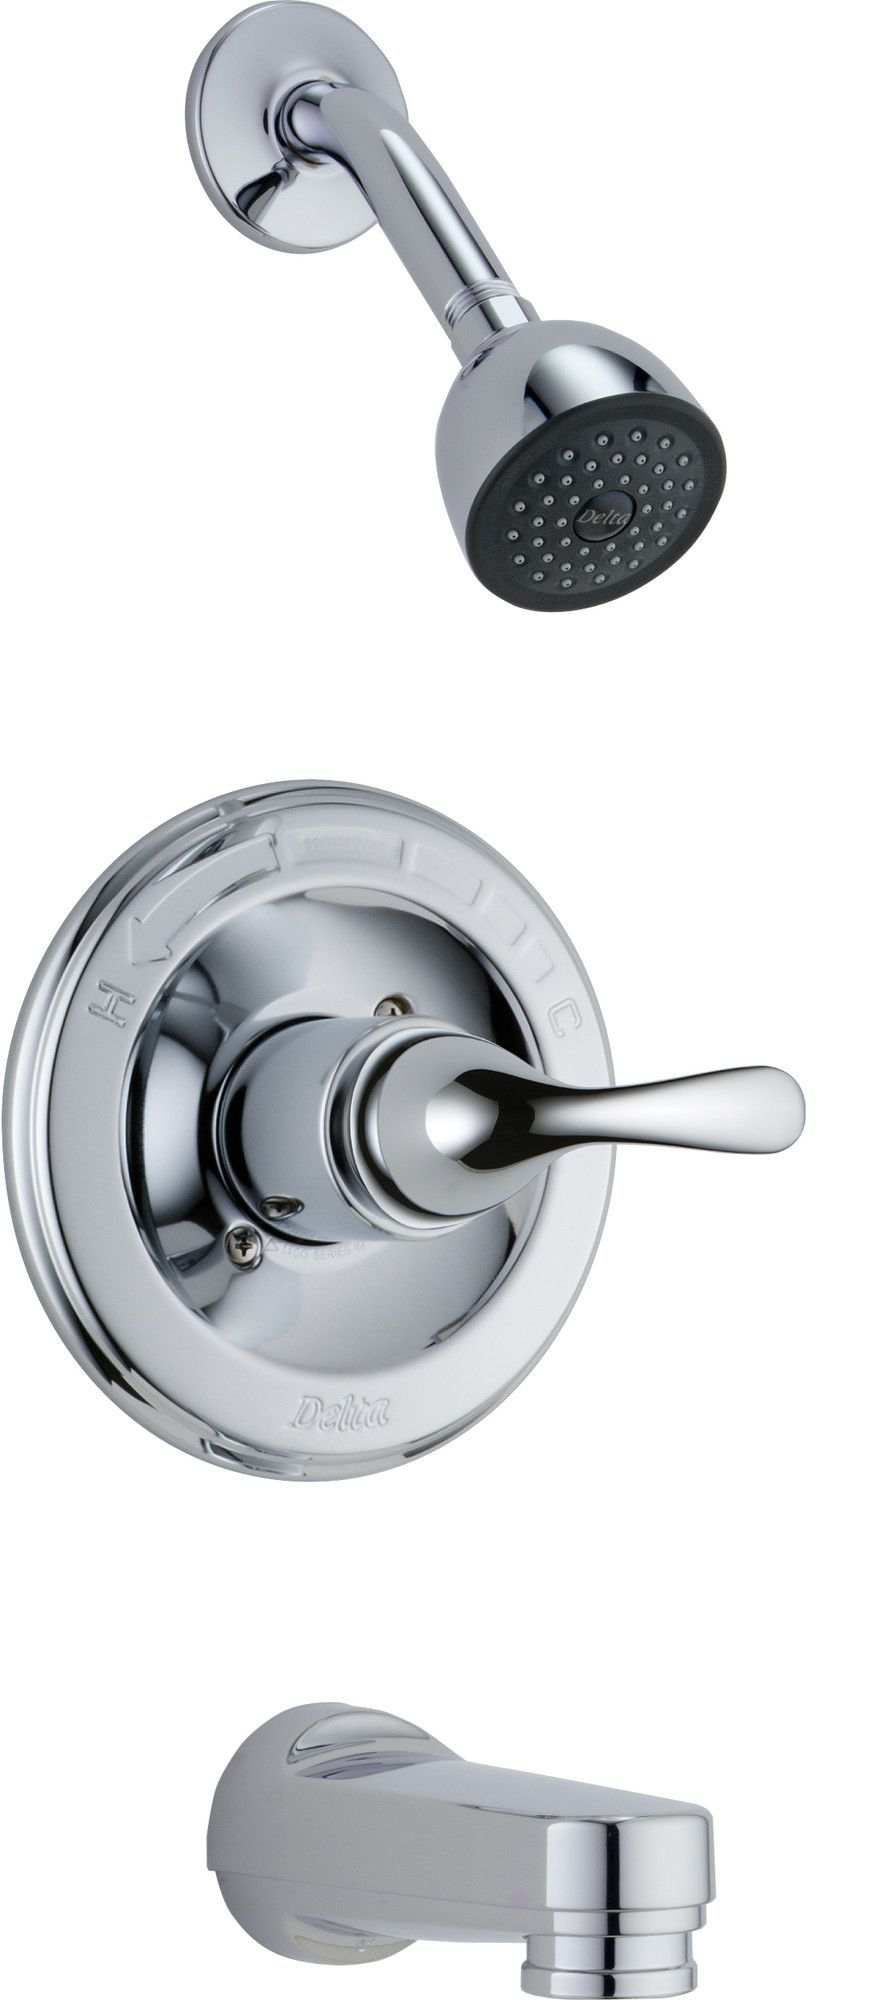 Other Core Tub And Shower Faucet With Lever Handles And Monitor